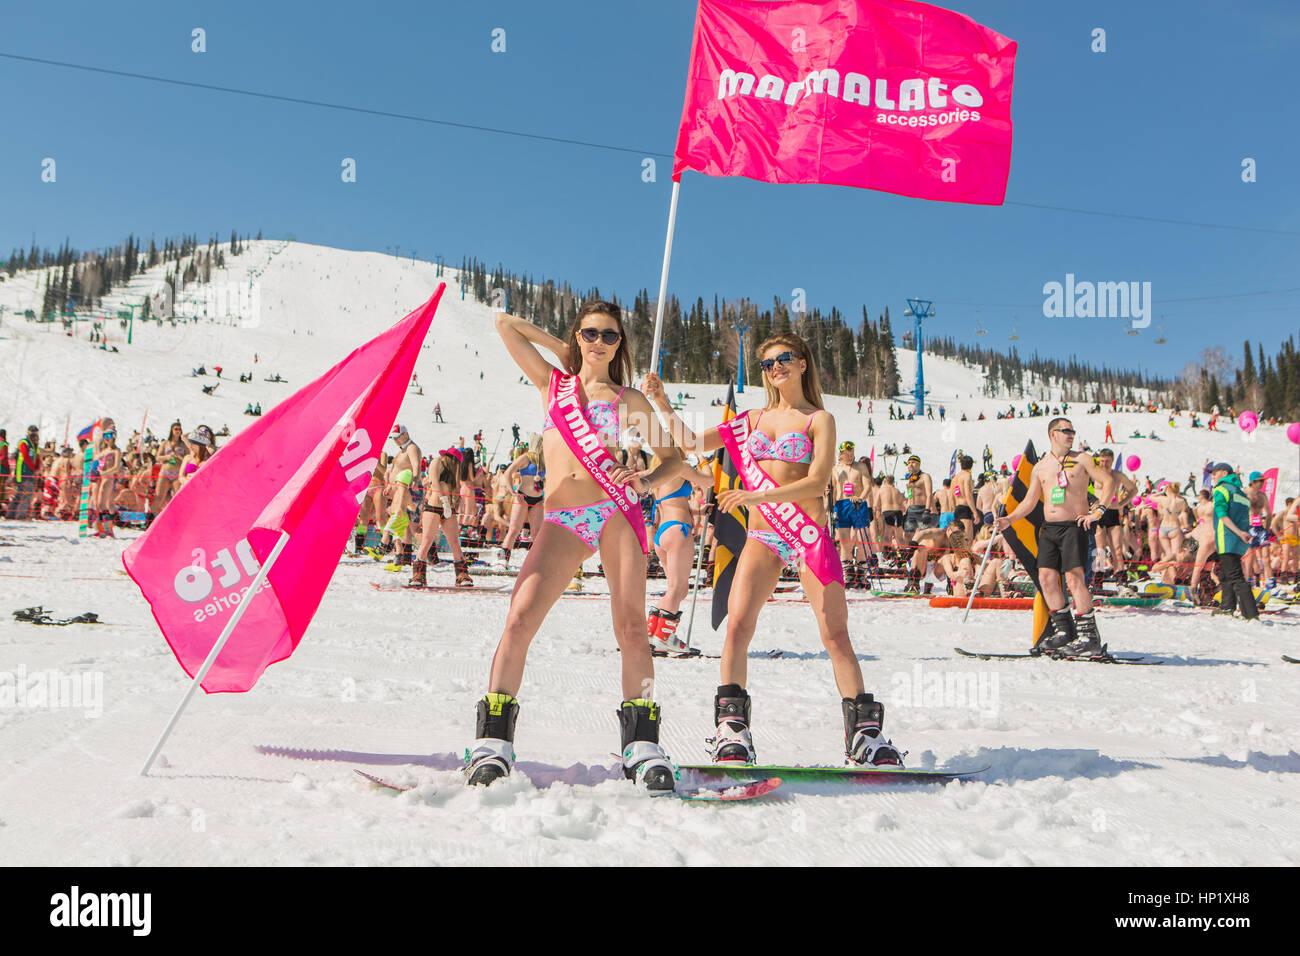 Sheregesh, Kemerovo region, Russia - April 16, 2016: Grelka Fest is a sports and entertainment activity for ski - Stock Image